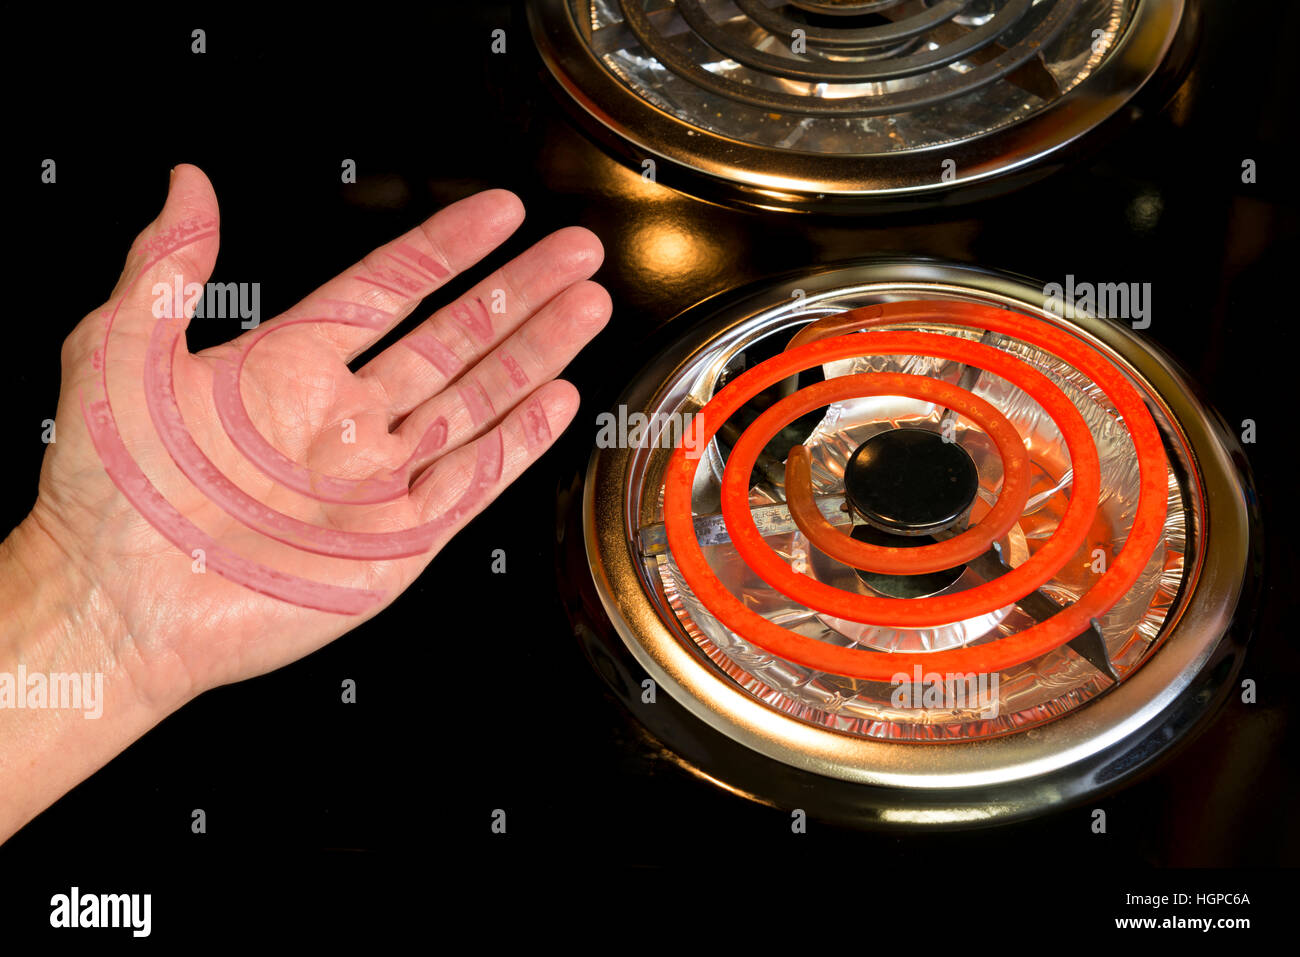 A scarred hand shows the danger of stove-top burners. - Stock Image